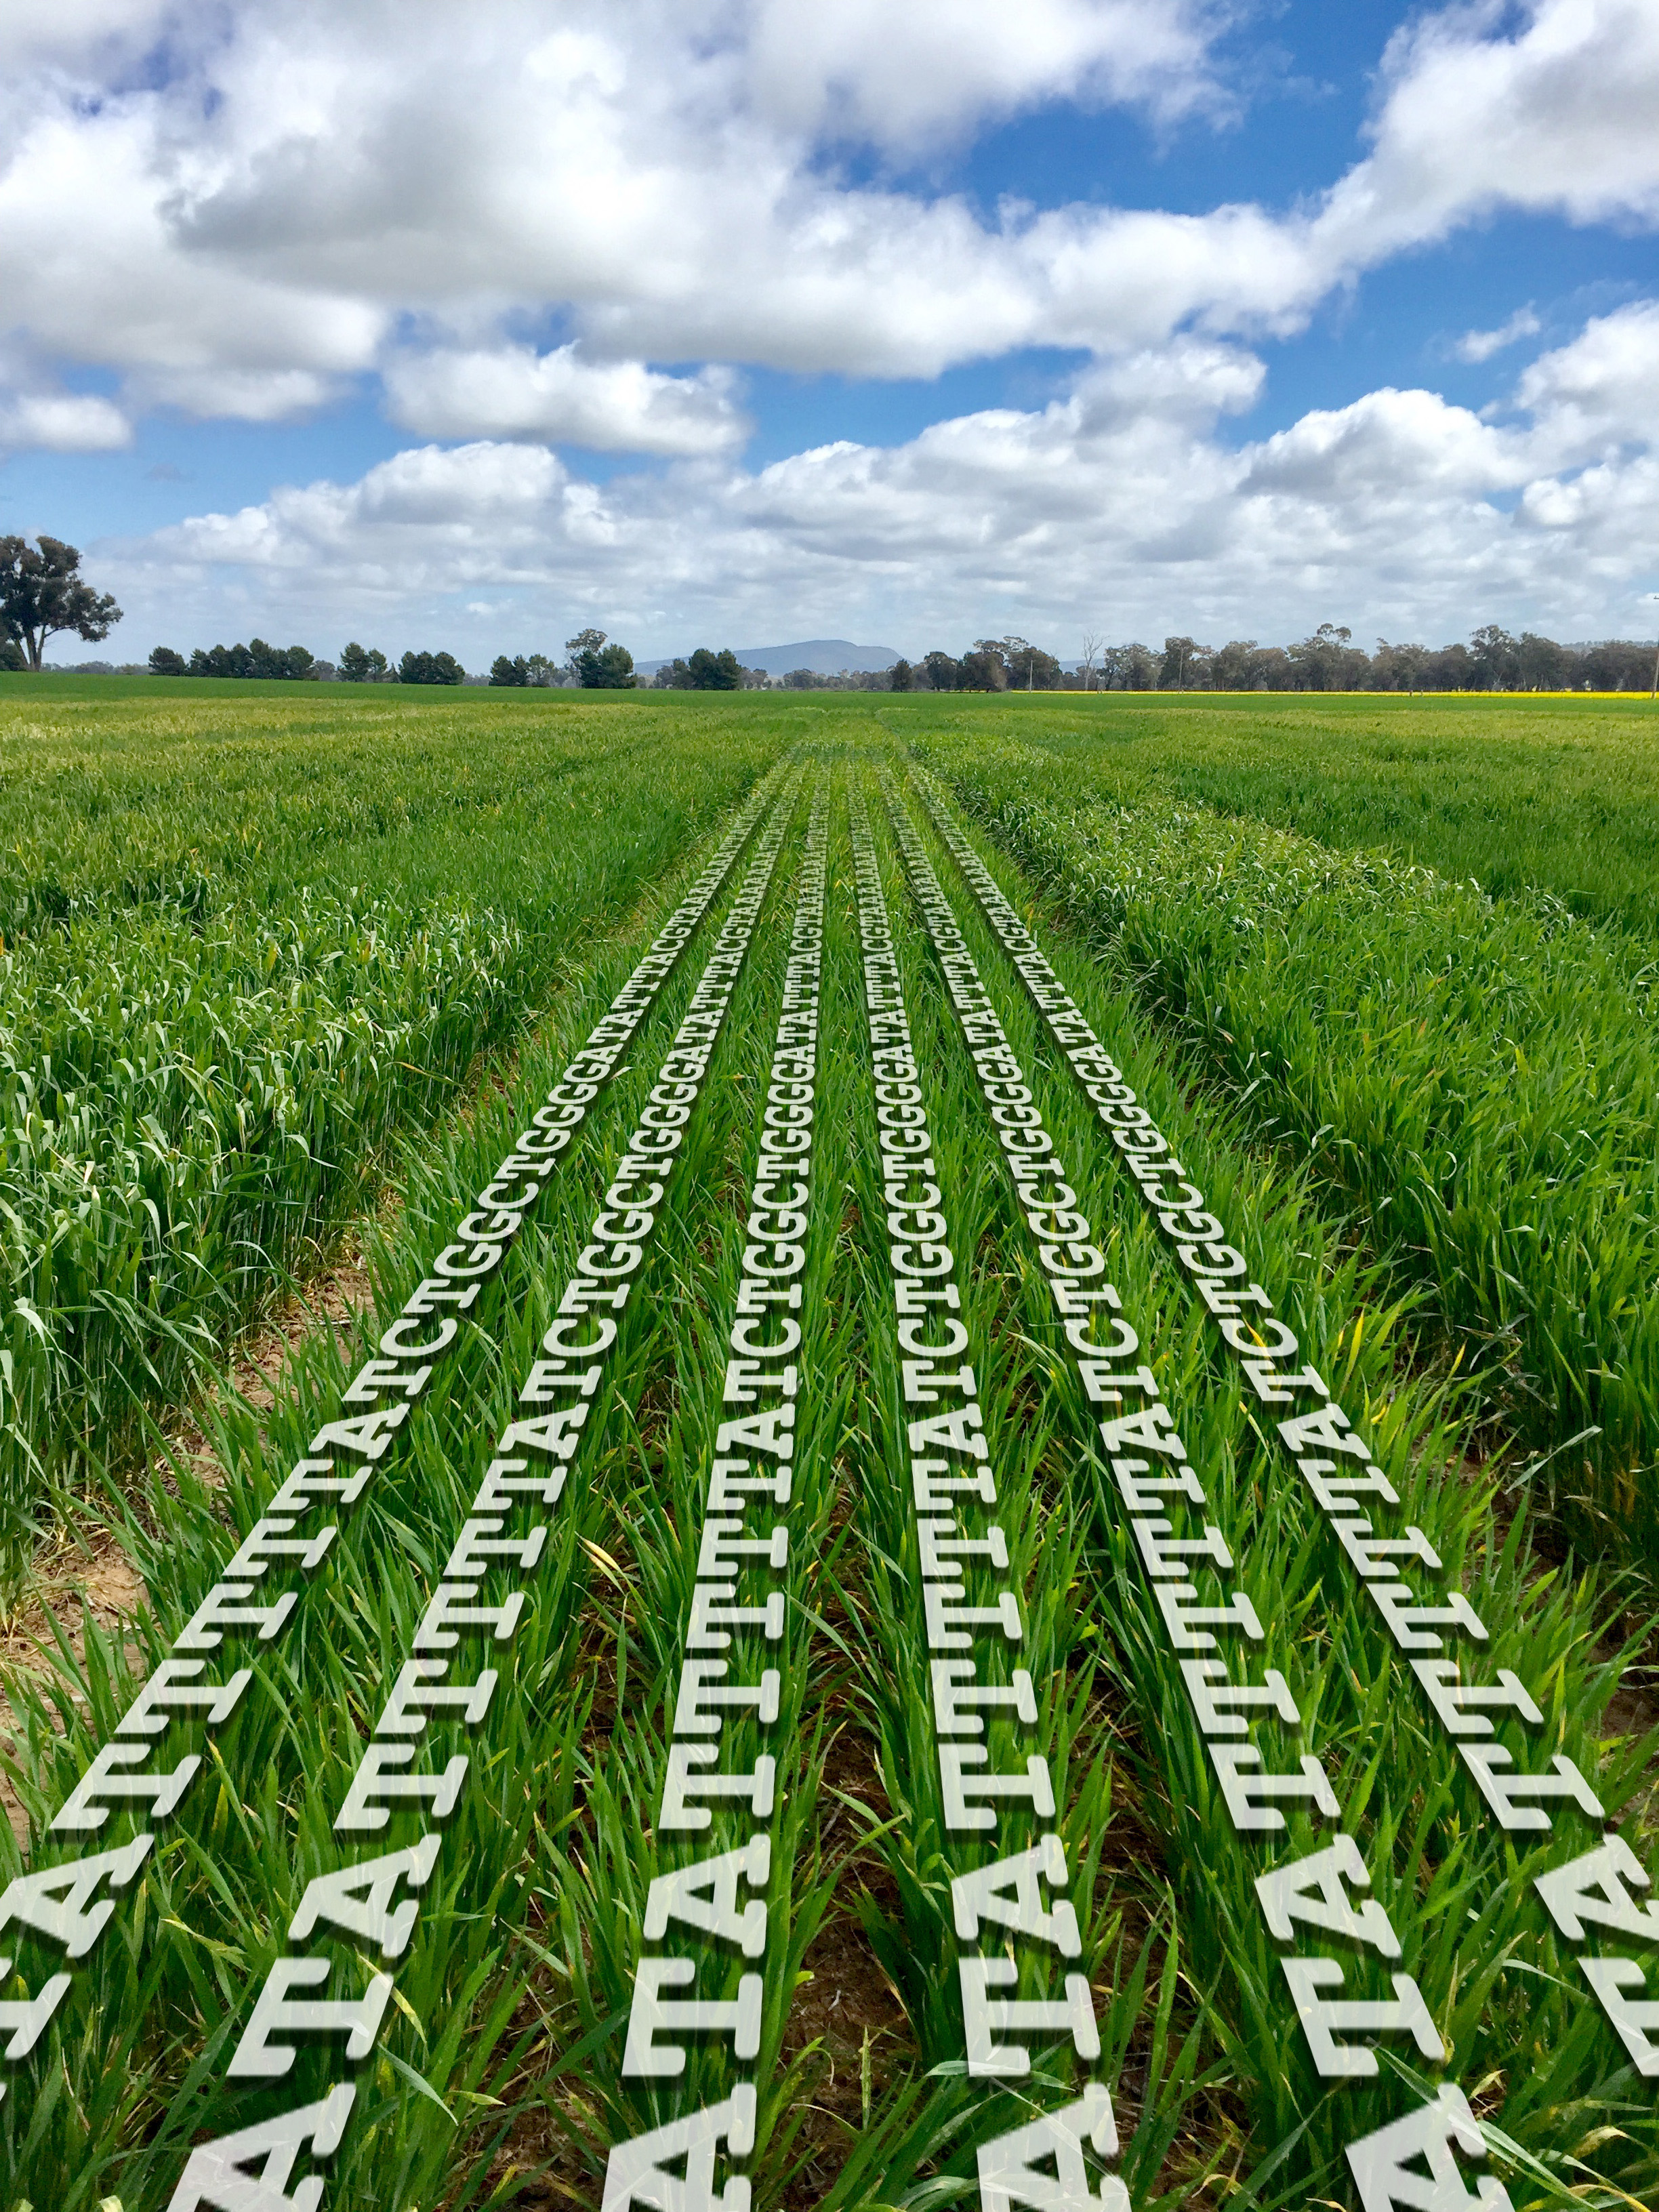 Crops growing in a field with letters in rows amongst the green crop